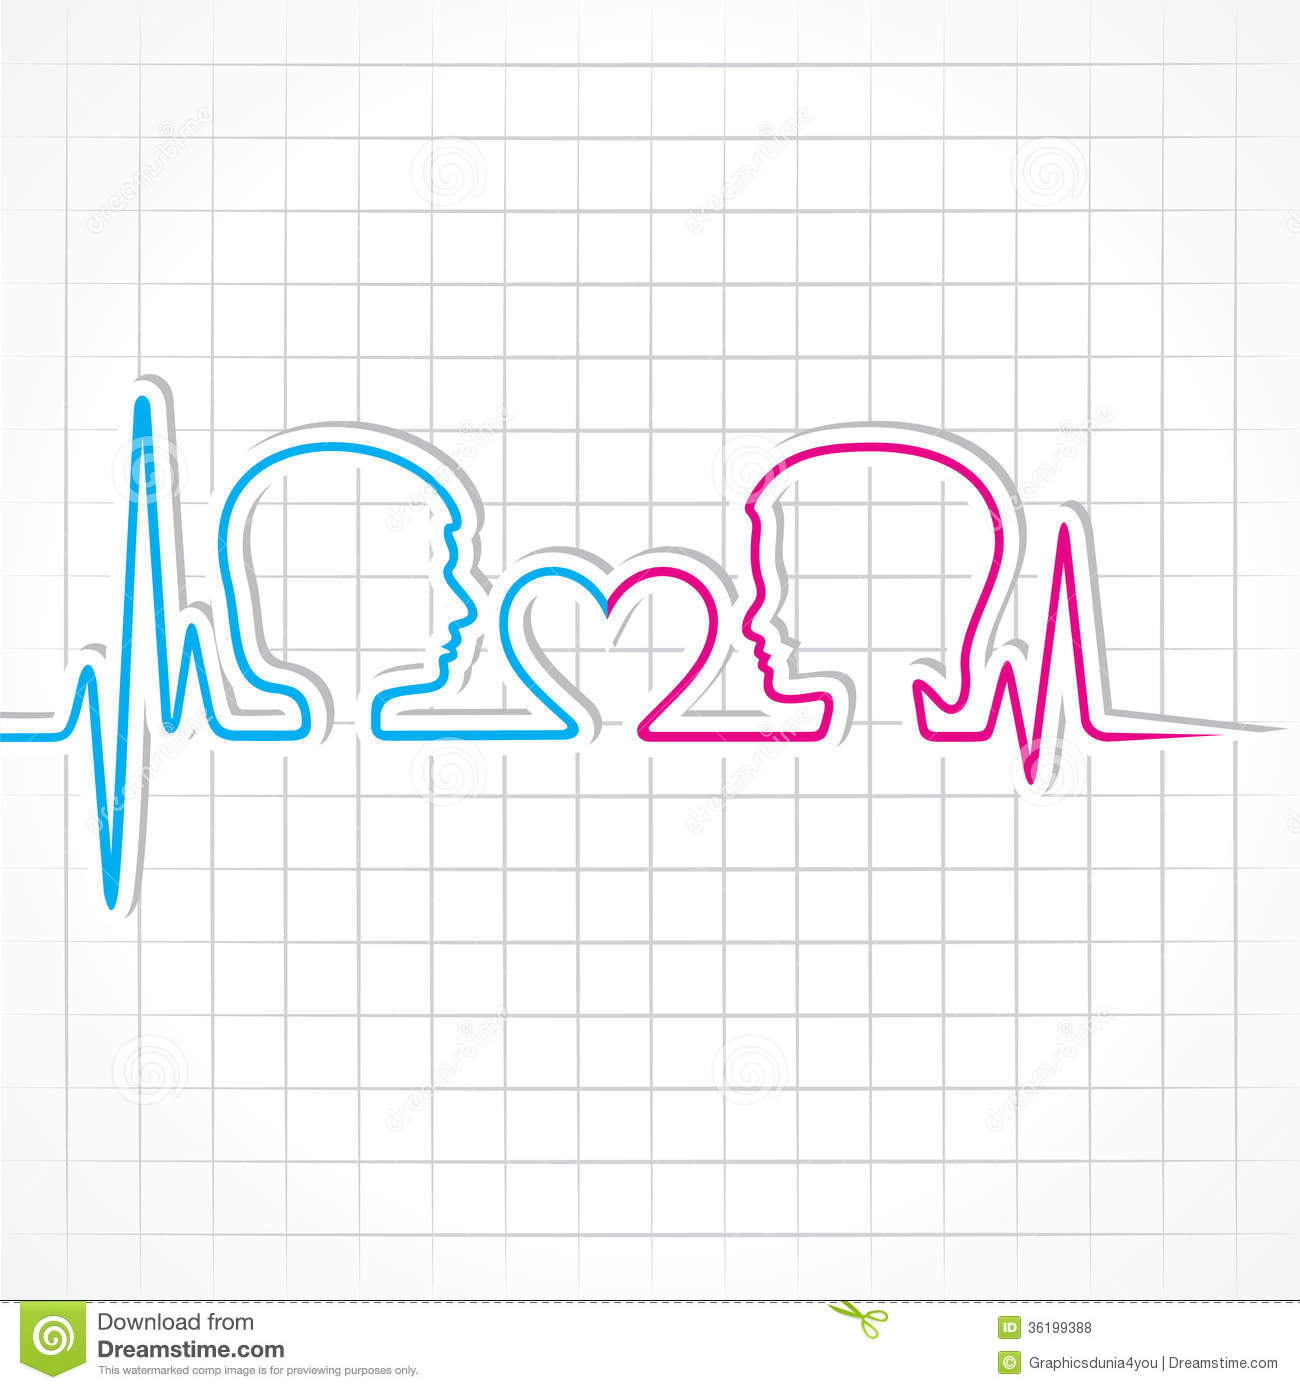 Heartbeat Make Malefemale Face And Heart Symbol Stock Vector